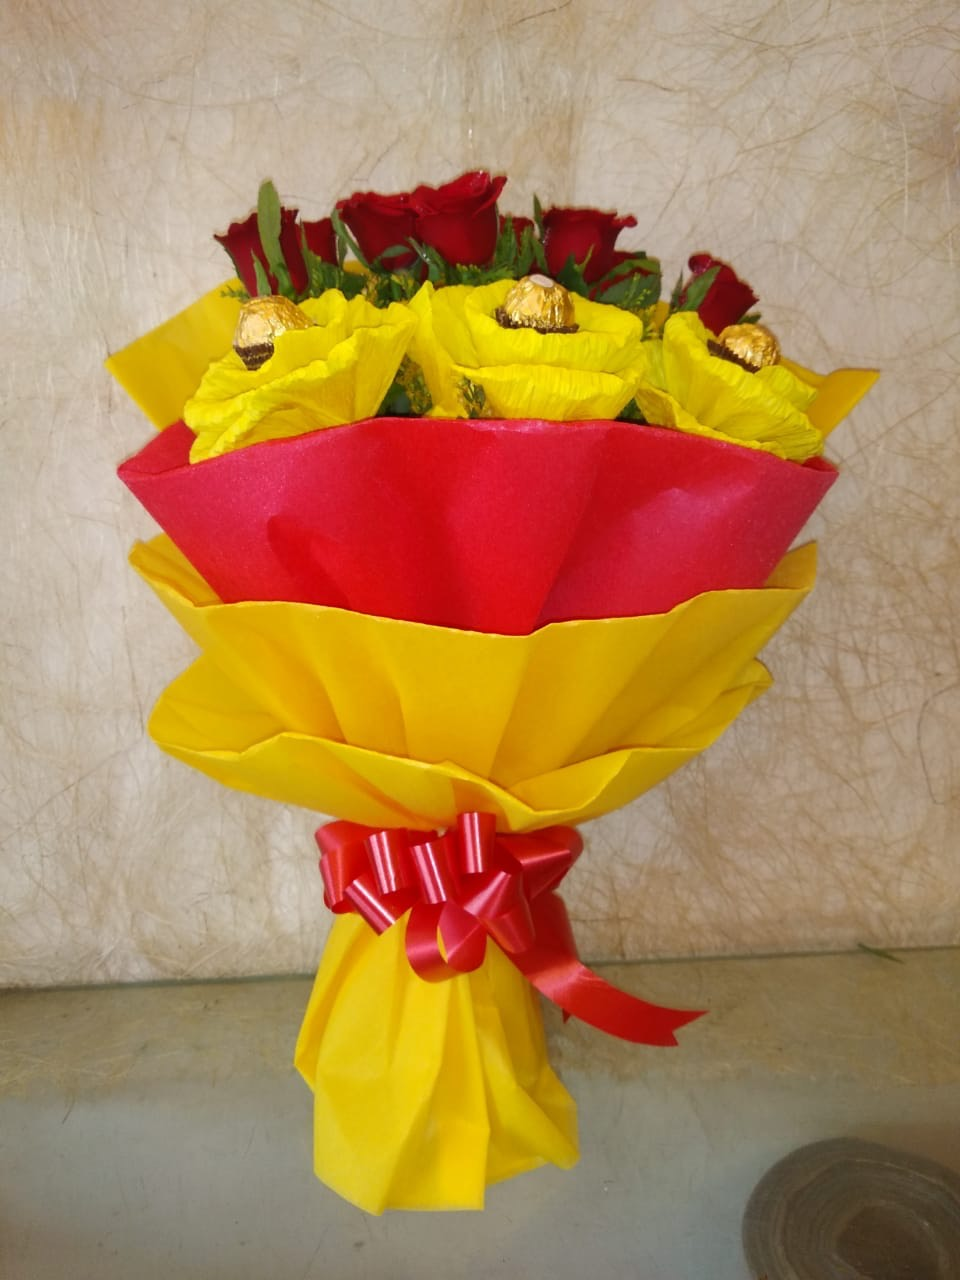 Flowers Delivery in Sector 36 GurgaonRed Roses Ferrero Rocher Bunch